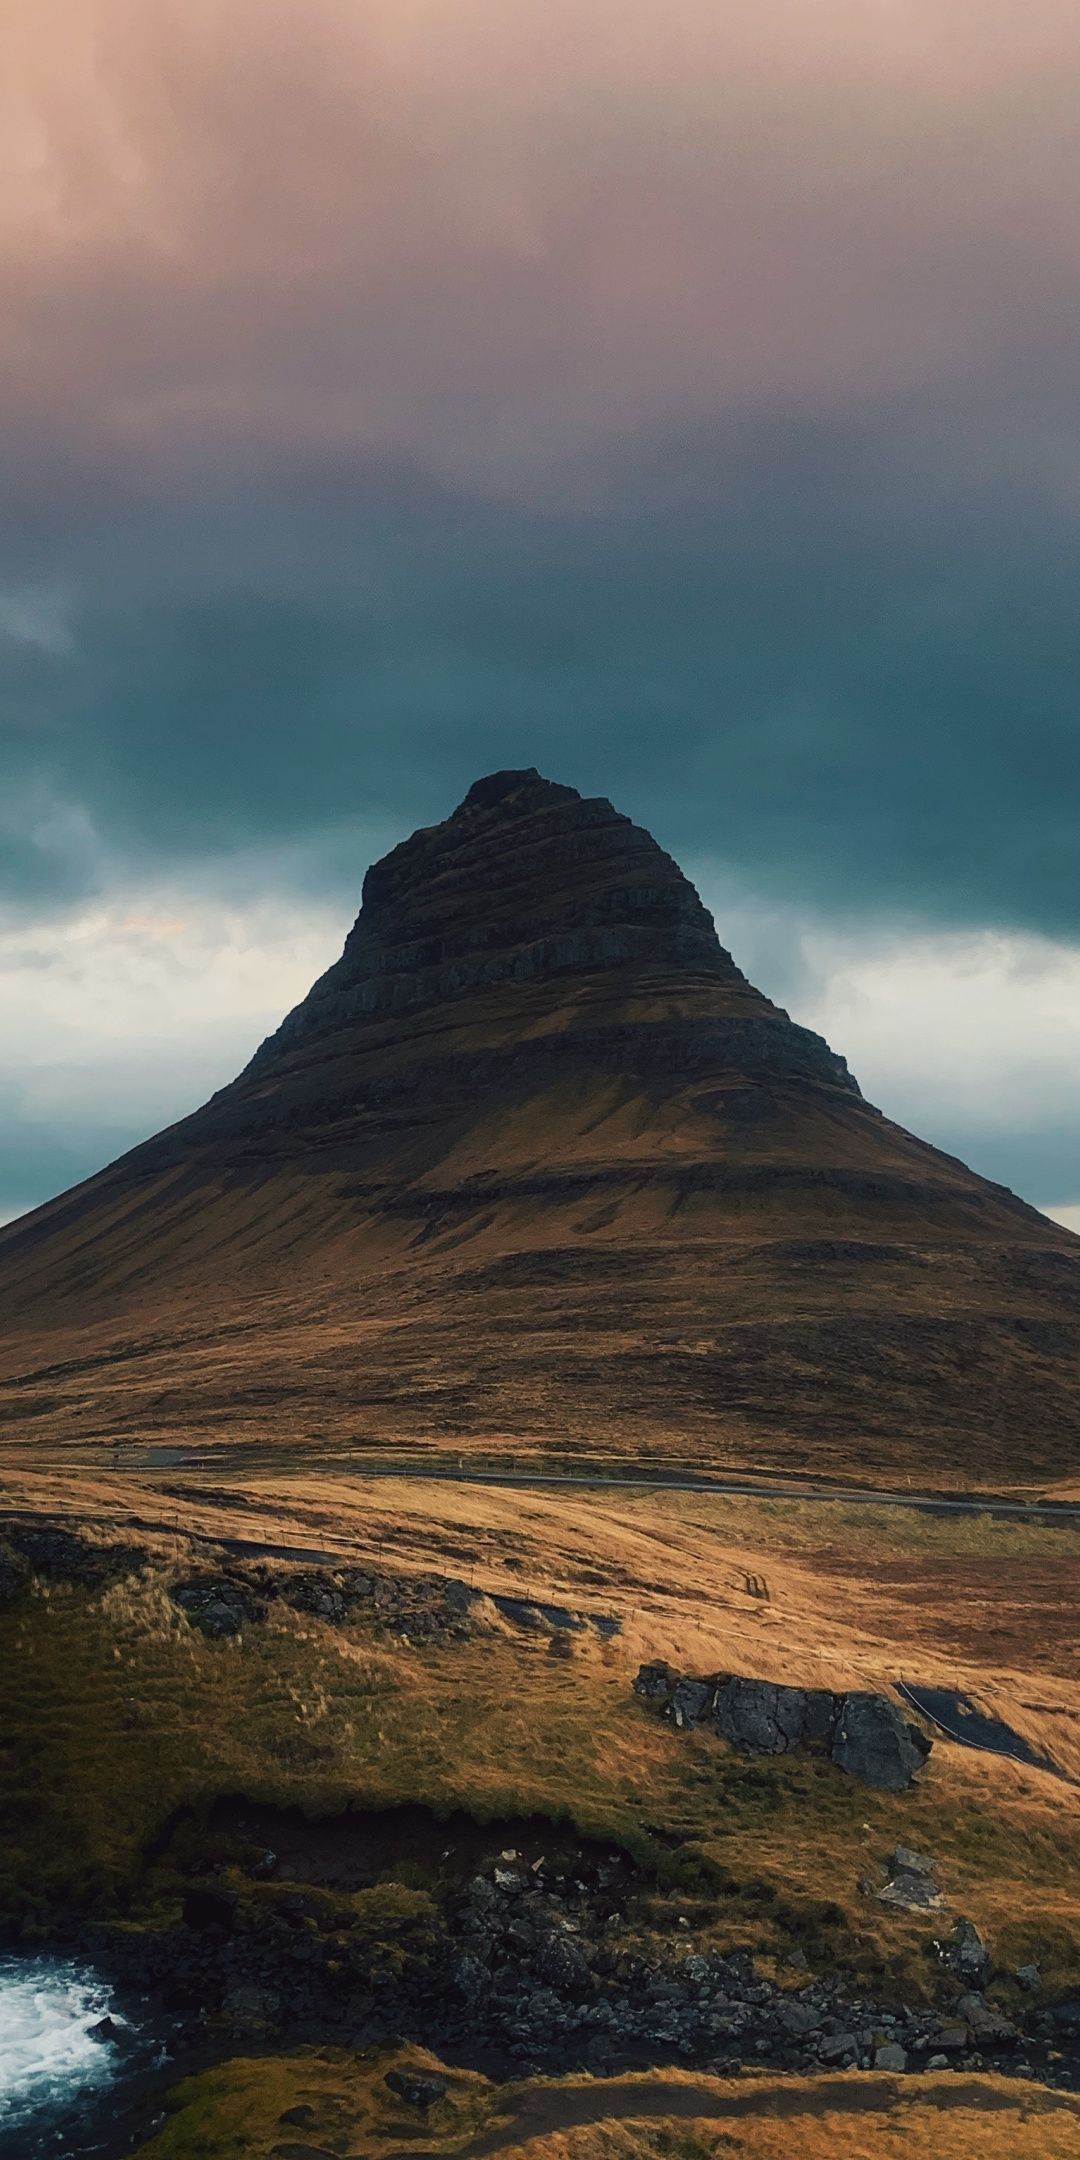 Iceland Mountain Peak Landscape 1080x2160 Wallpaper Iceland Wallpaper Iceland Landscape Iphone Wallpaper Iceland